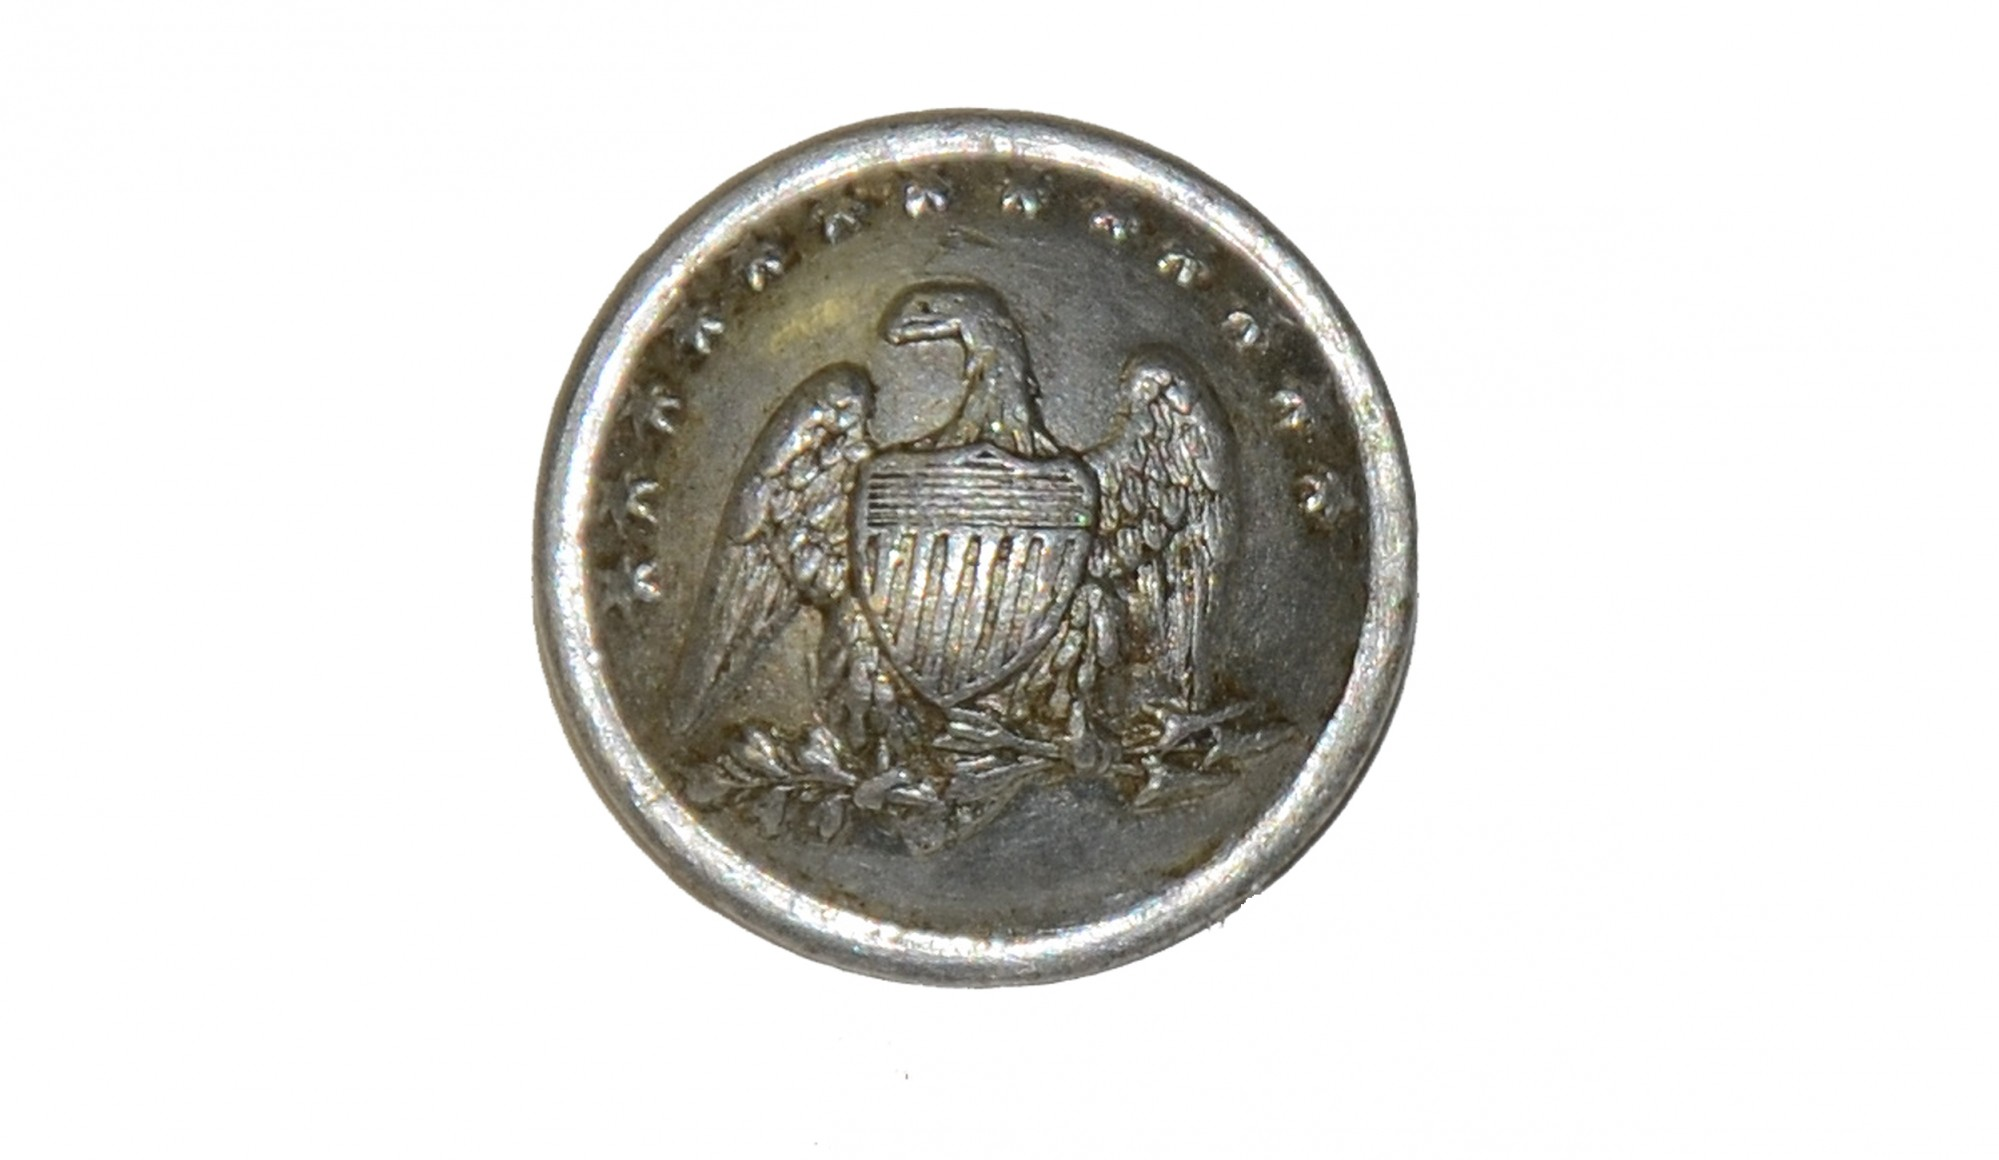 FRENCH CHASSEUR CUFF BUTTON AS WORN BY PENNSYLVANIA, MASSACHUSETTS & NEW YORK UNITS